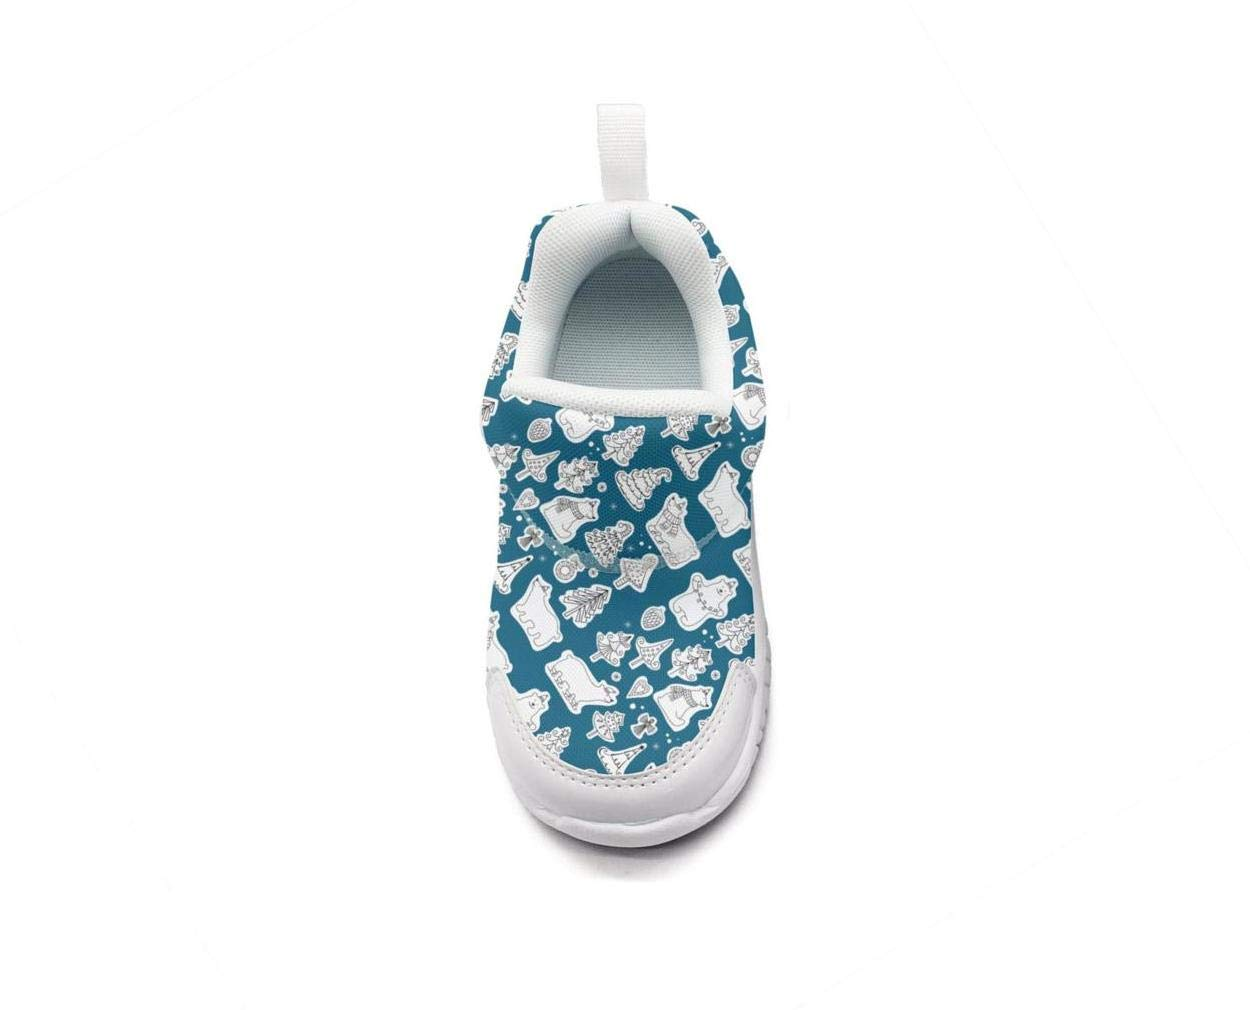 ONEYUAN Children Happy Christmas Polar Bear Kid Casual Lightweight Sport Shoes Sneakers Walking Athletic Shoes